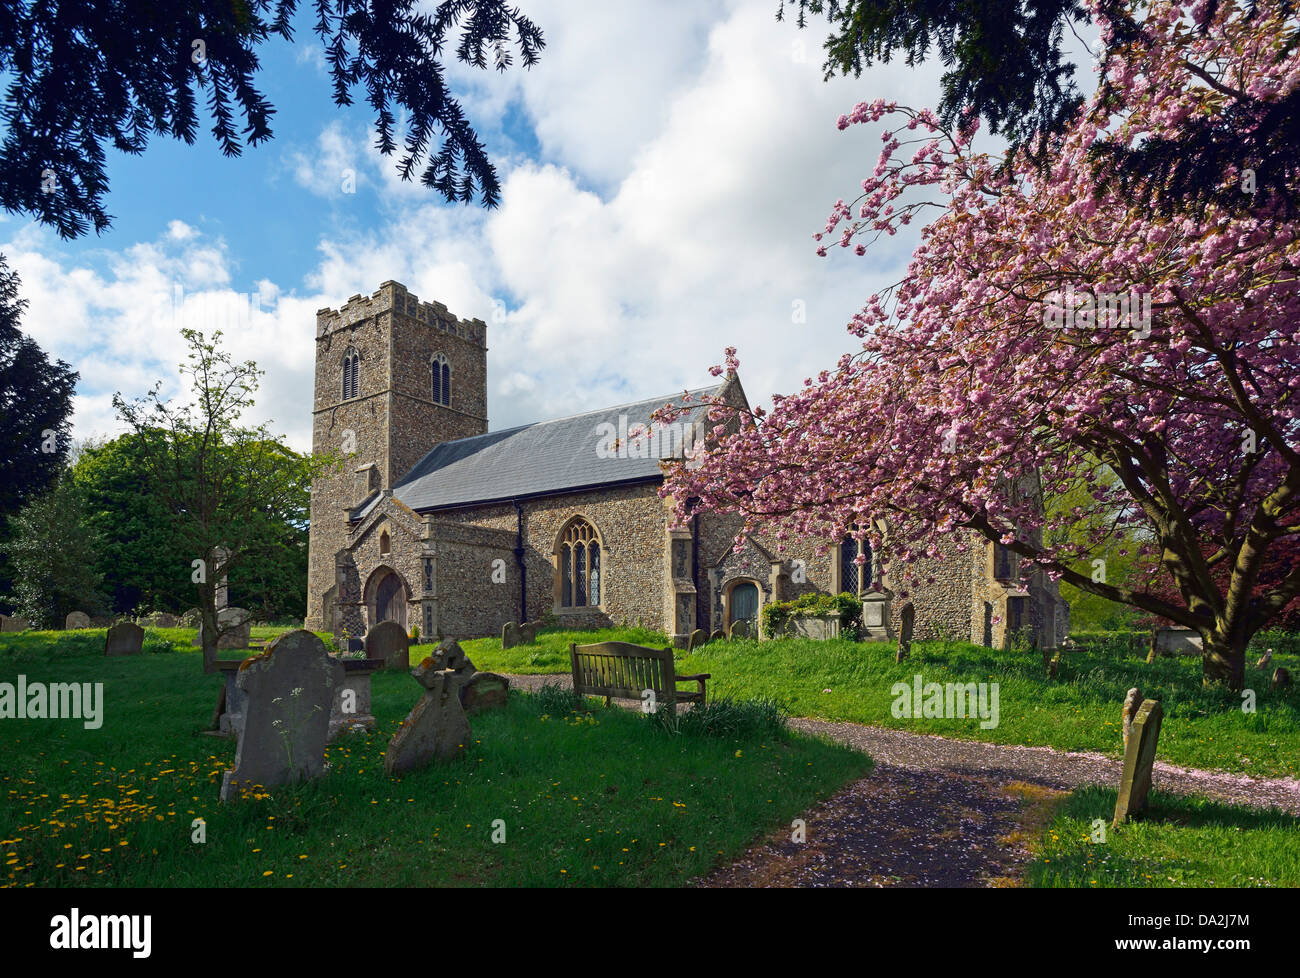 church-of-saint-mary-benhall-suffolk-england-united-kingdom-europe-DA2J7M.jpg